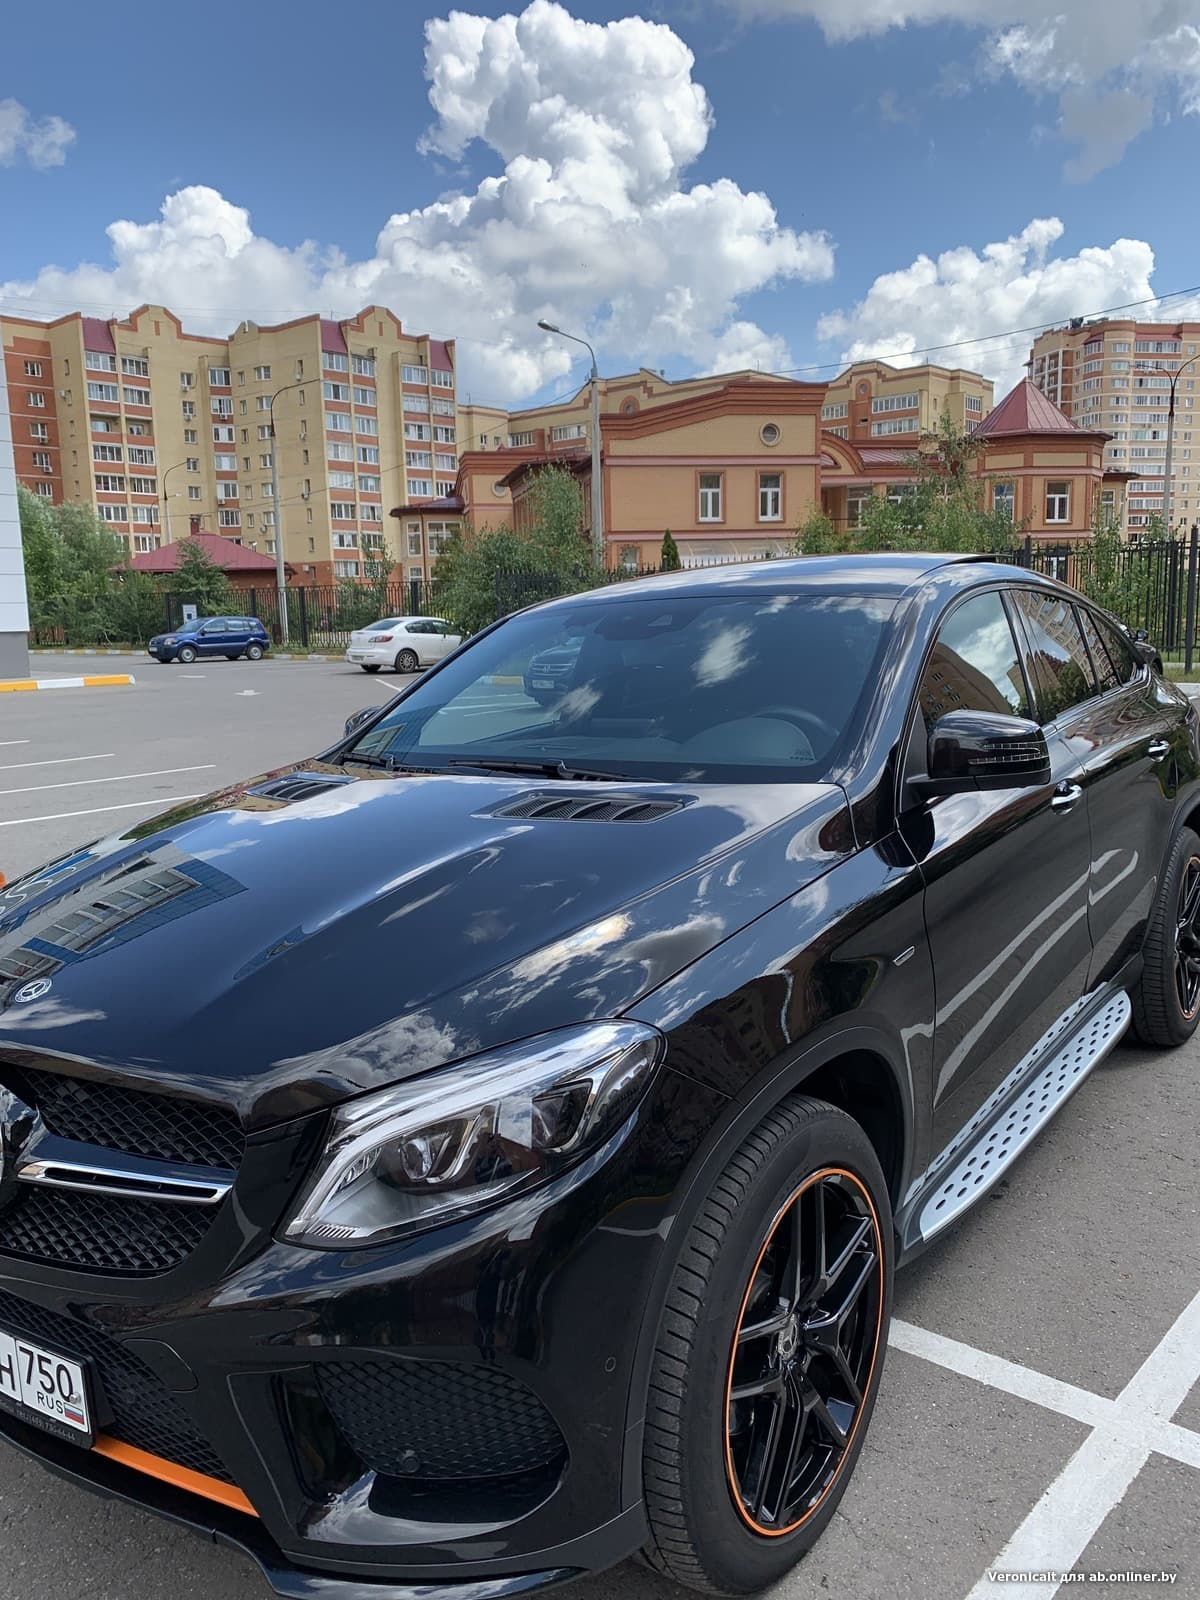 Mercedes-Benz GLE350 coupe AMG orange art edition